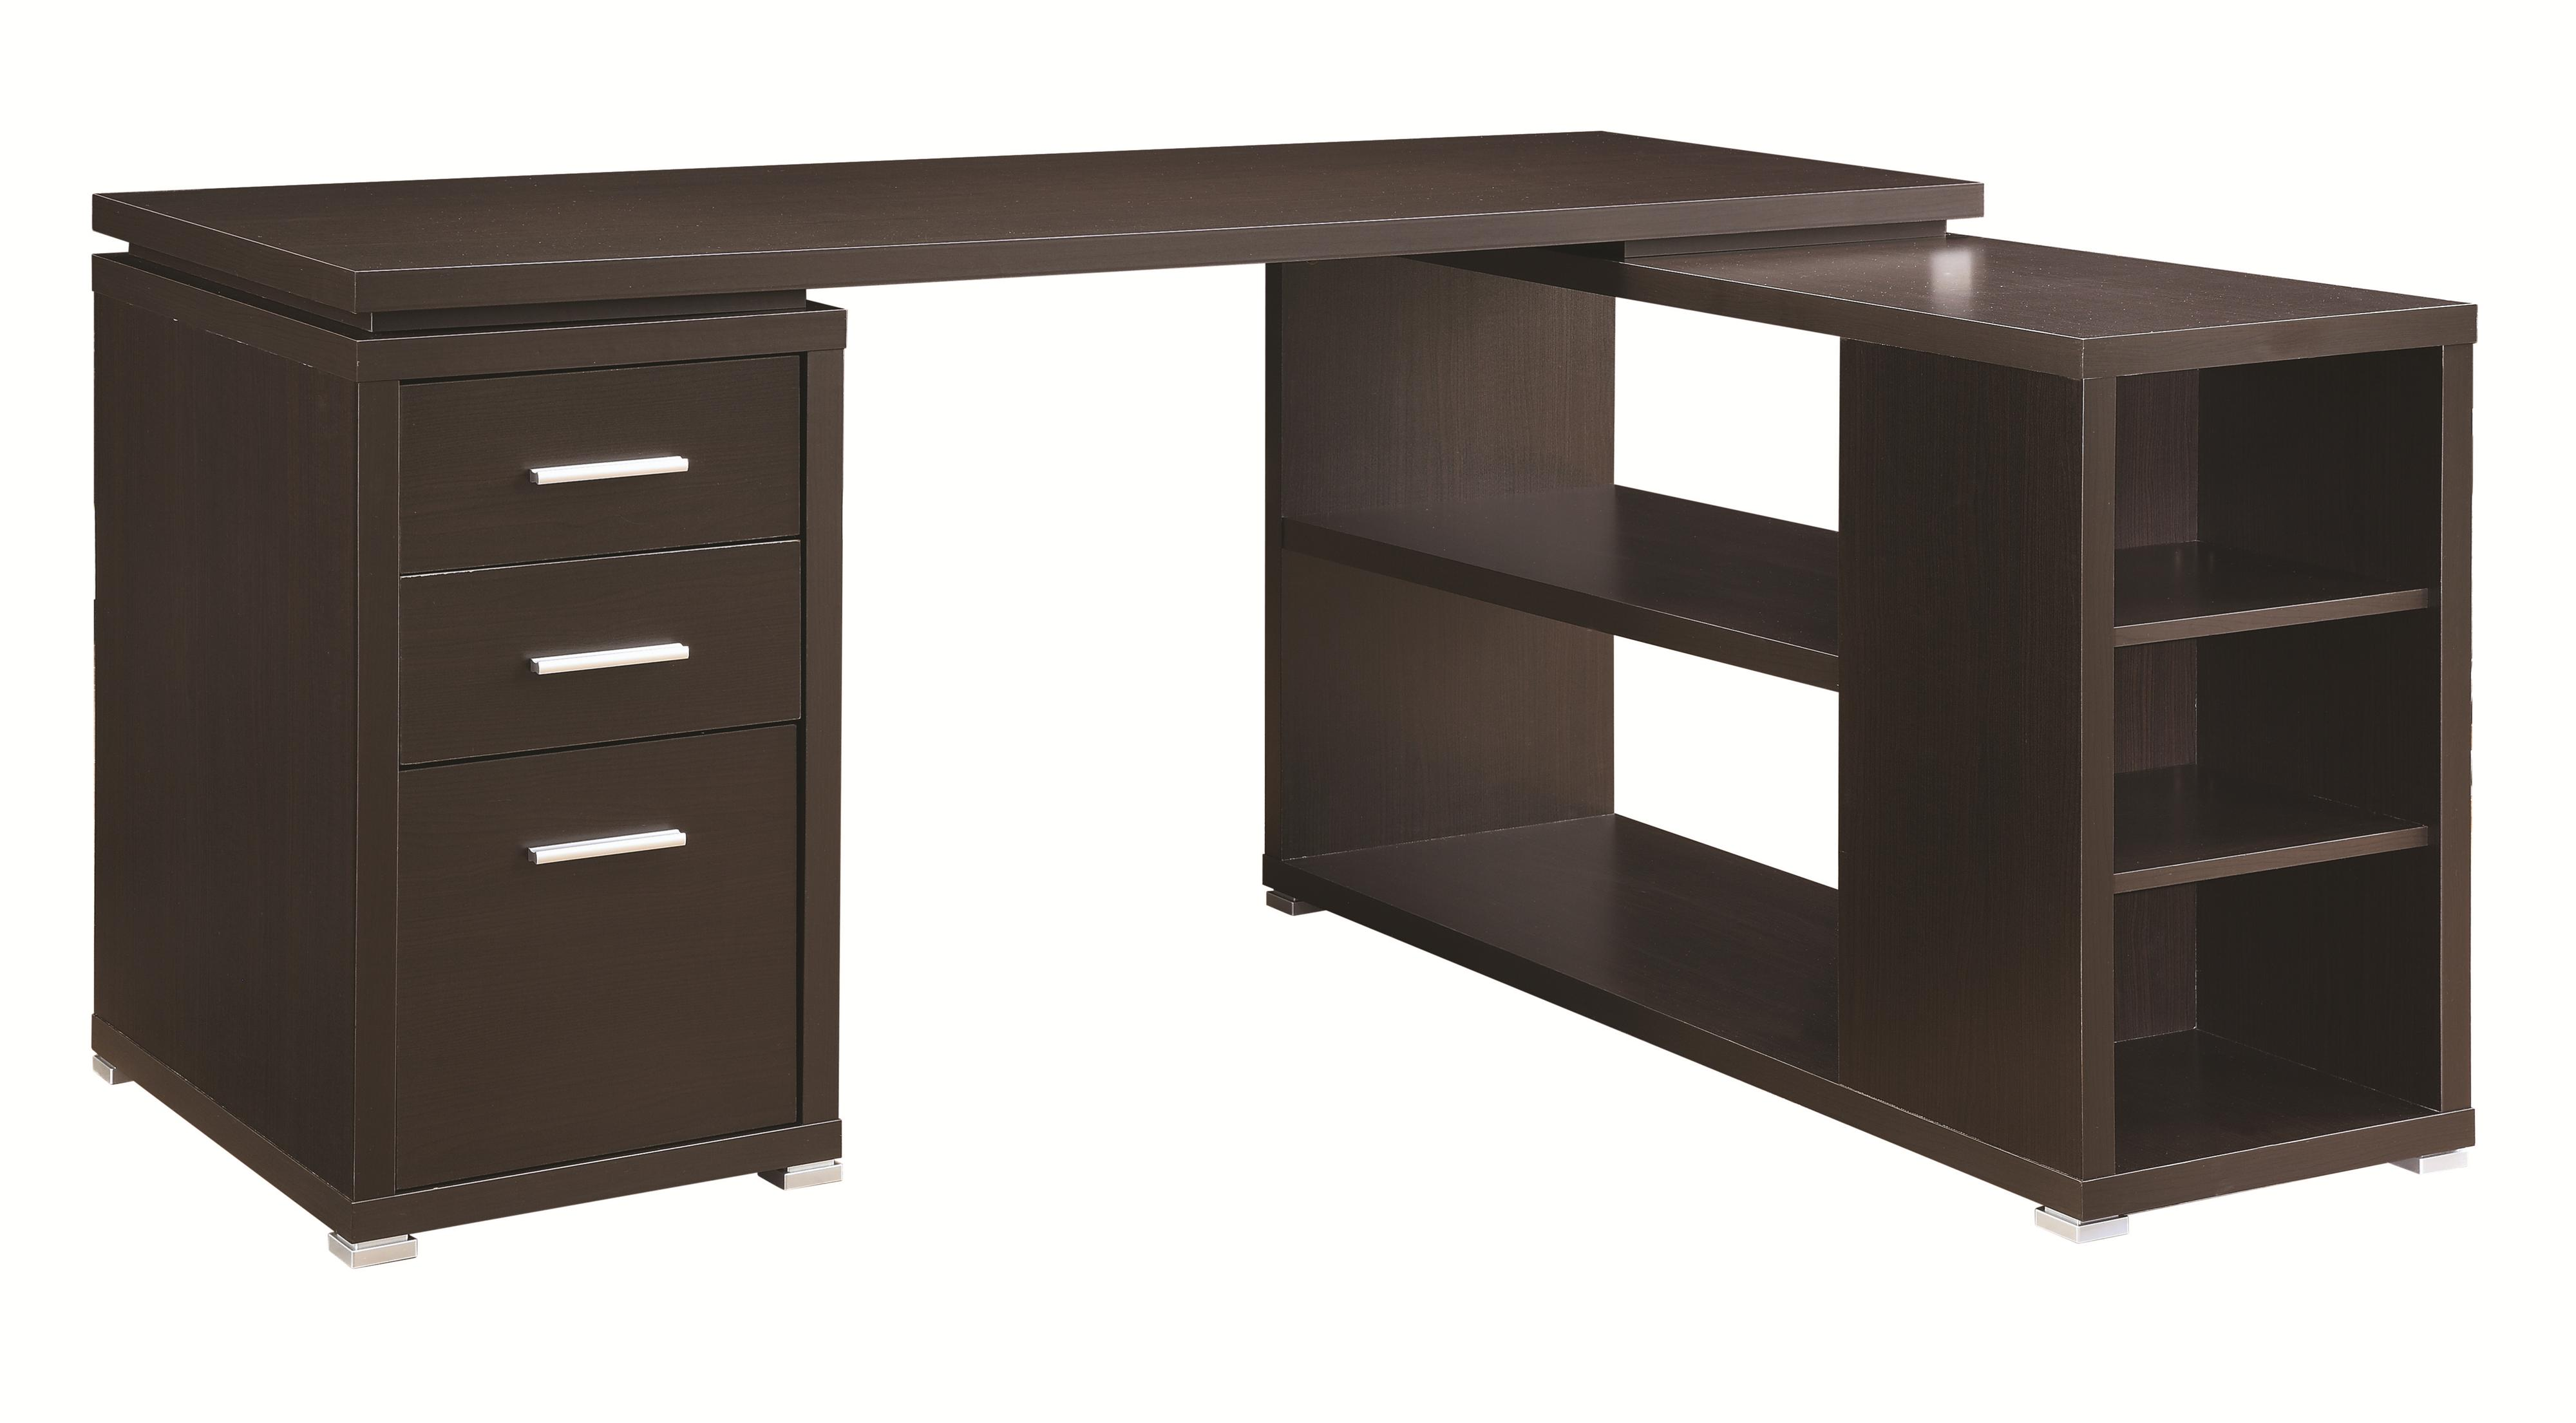 Yvette Office Desk by Coaster at Beck's Furniture